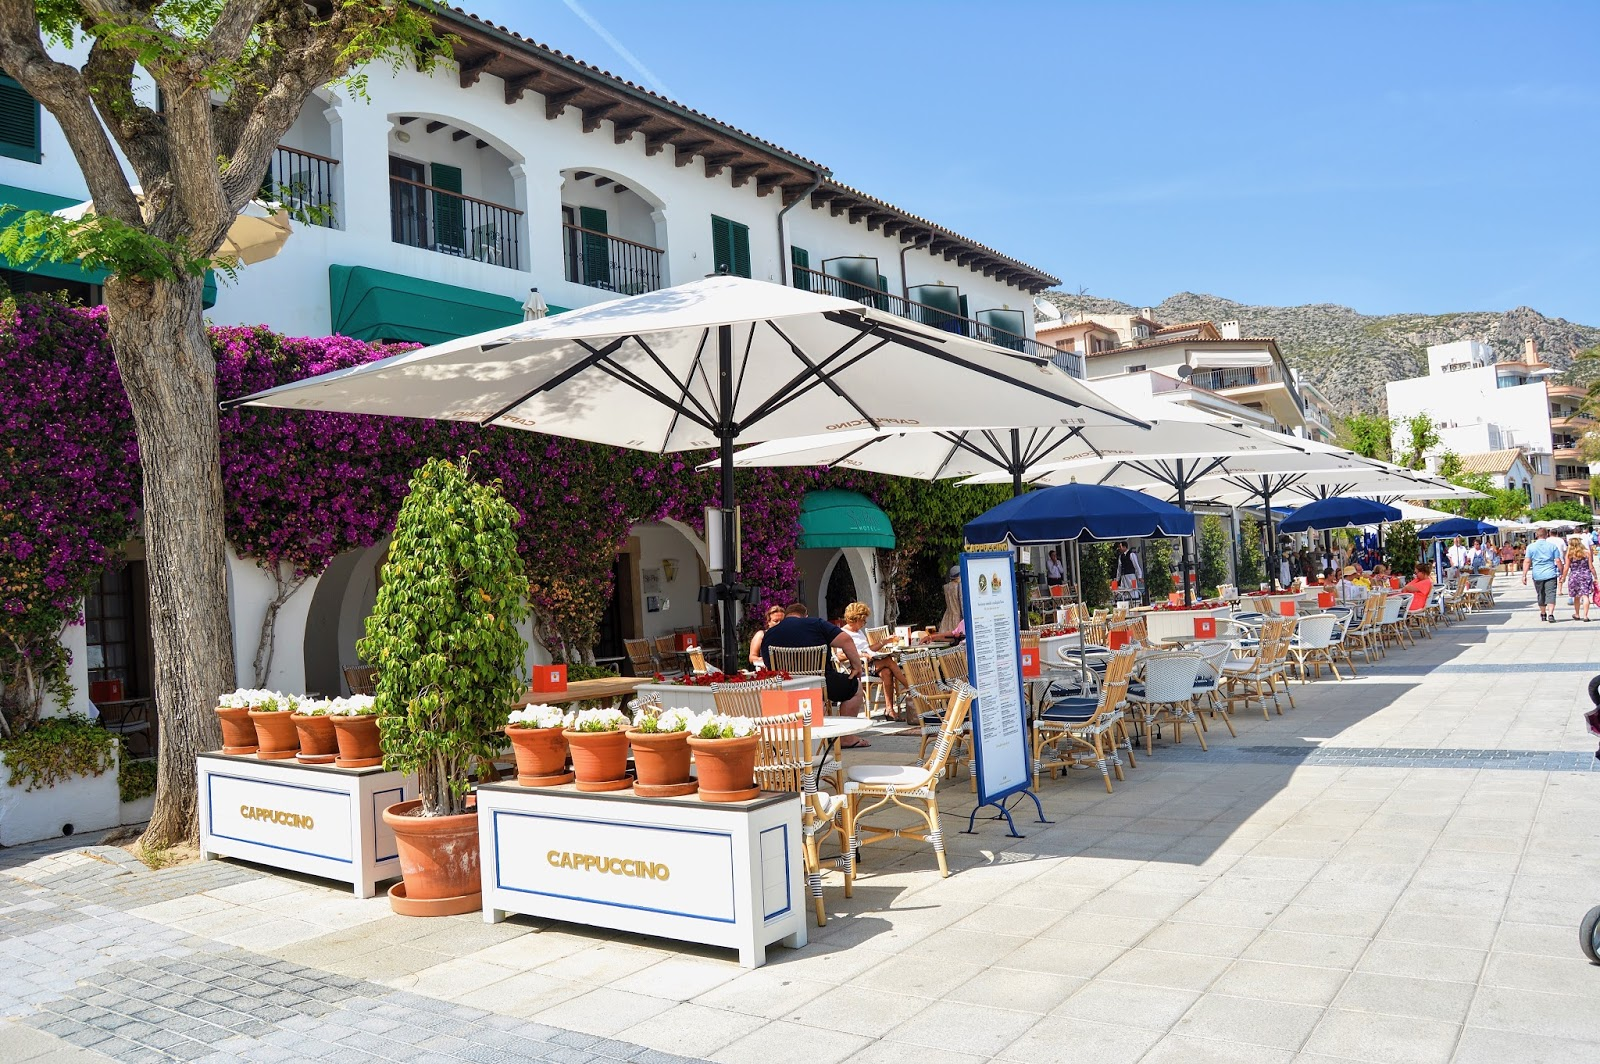 A photo of a patio in Mallorca Spain from the post 'planning a Europe Trip from India'